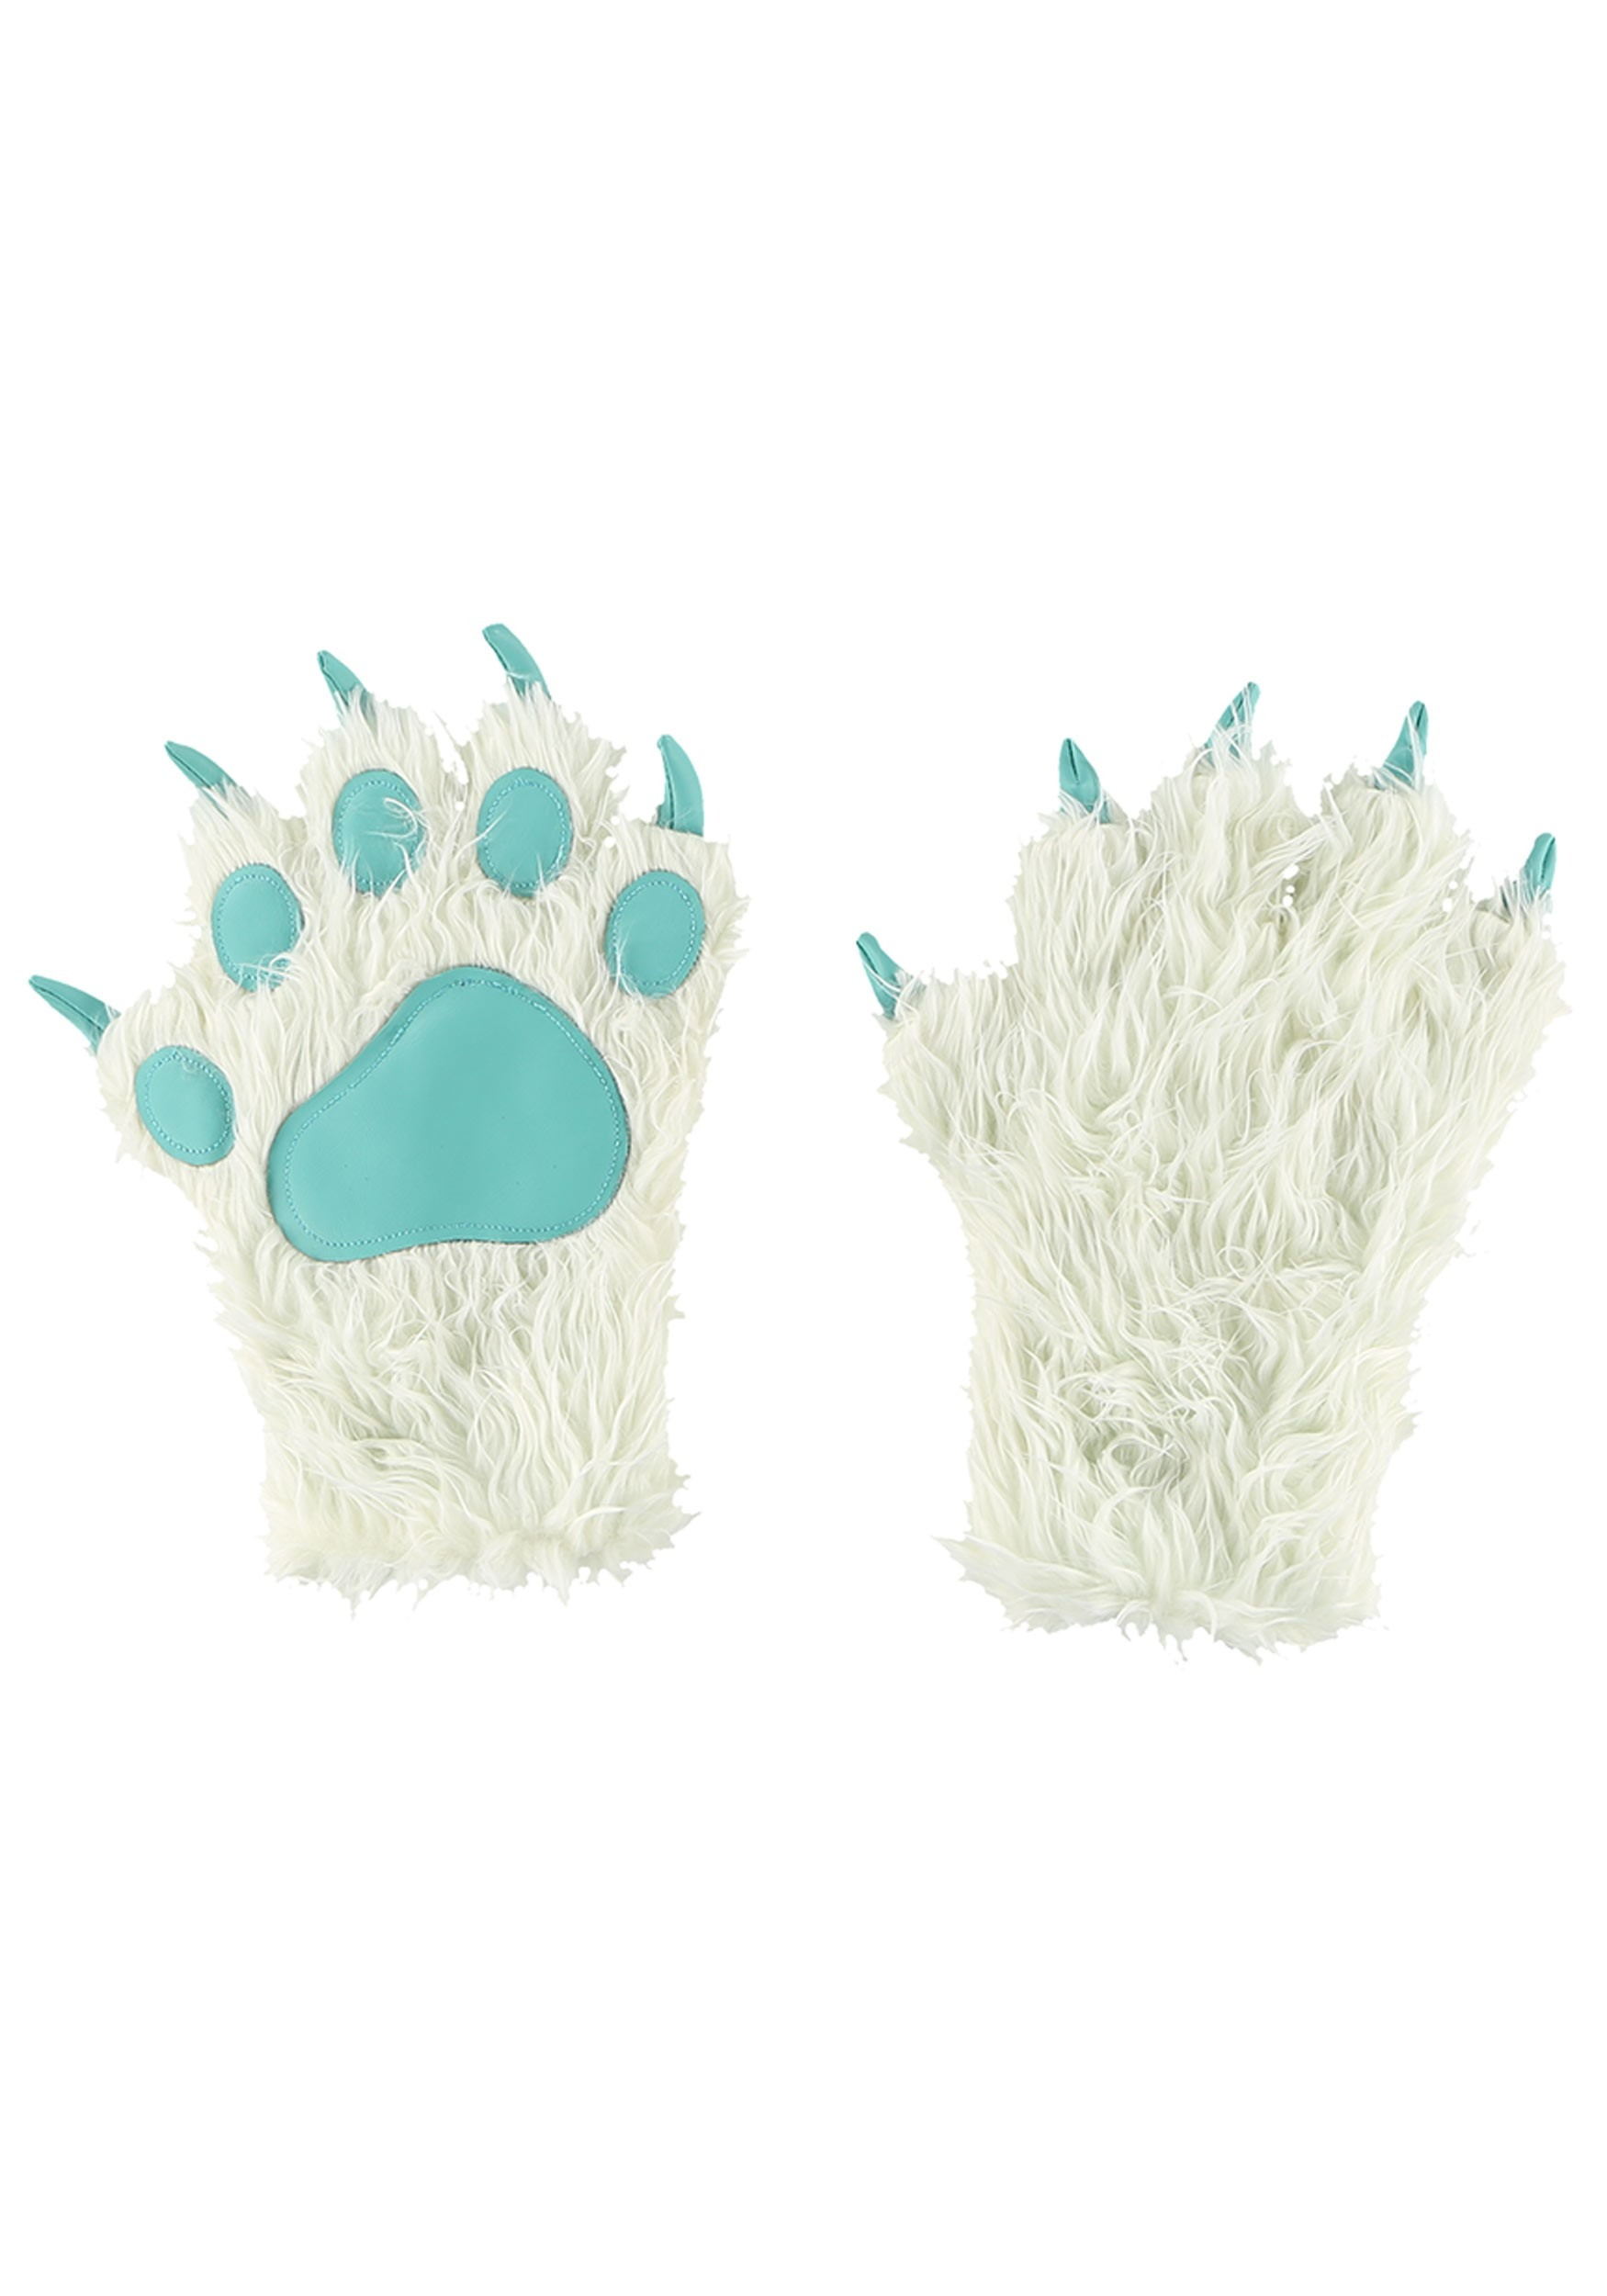 Yeti Paw Mitt Glove for Kids